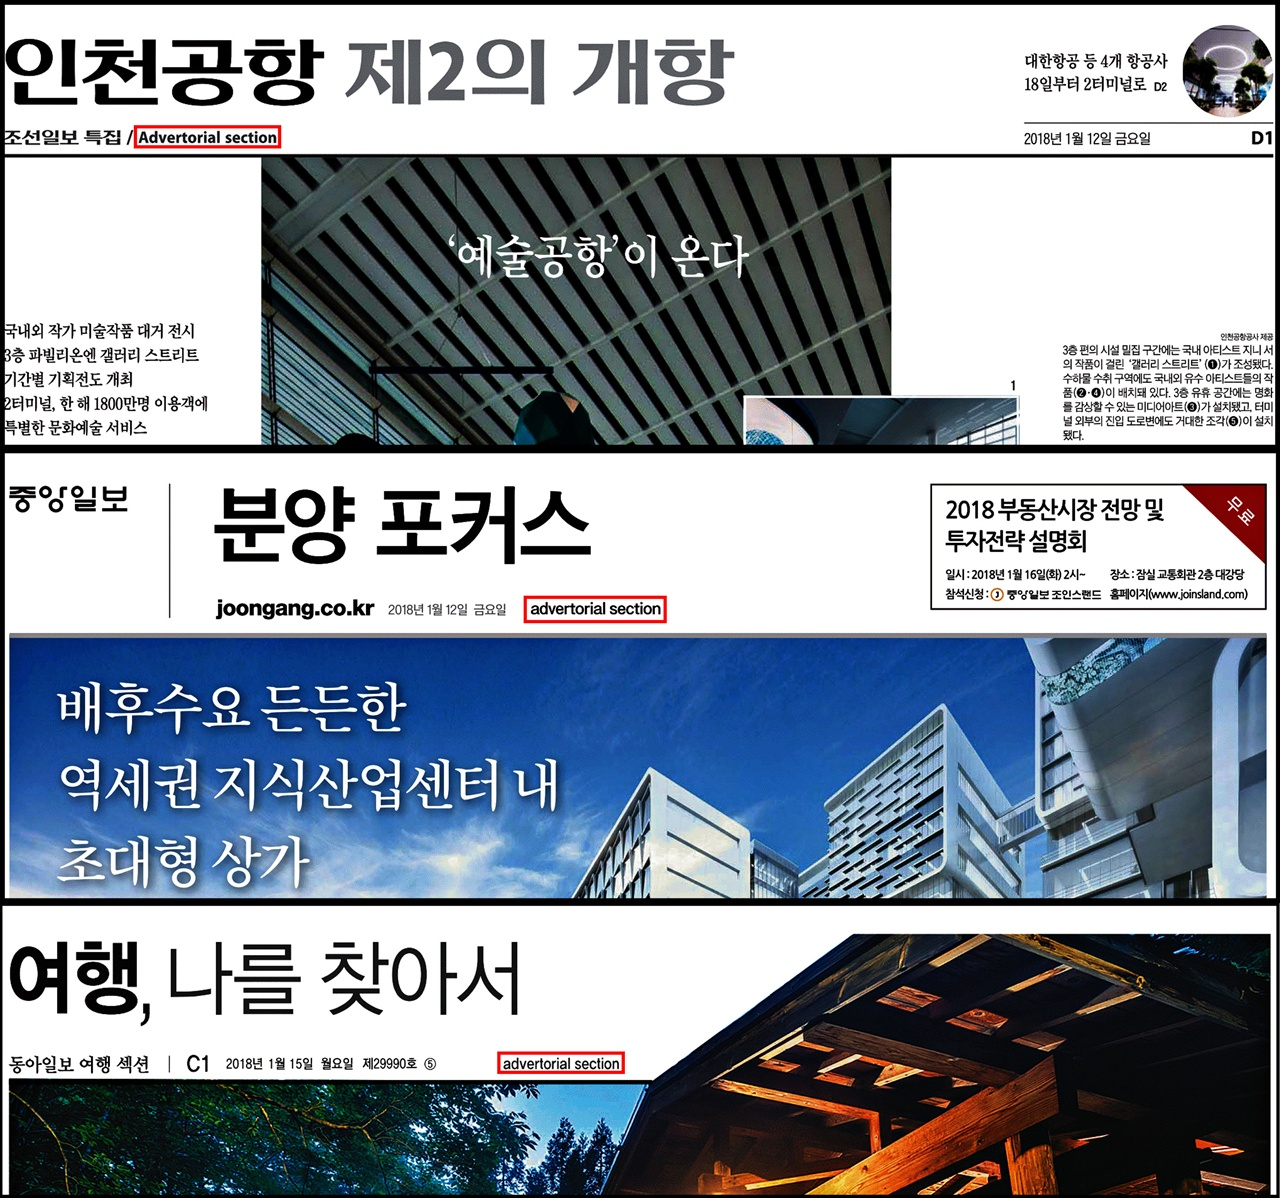 △ Advertorial section이라는 영문을 표기한 신문 광고섹션